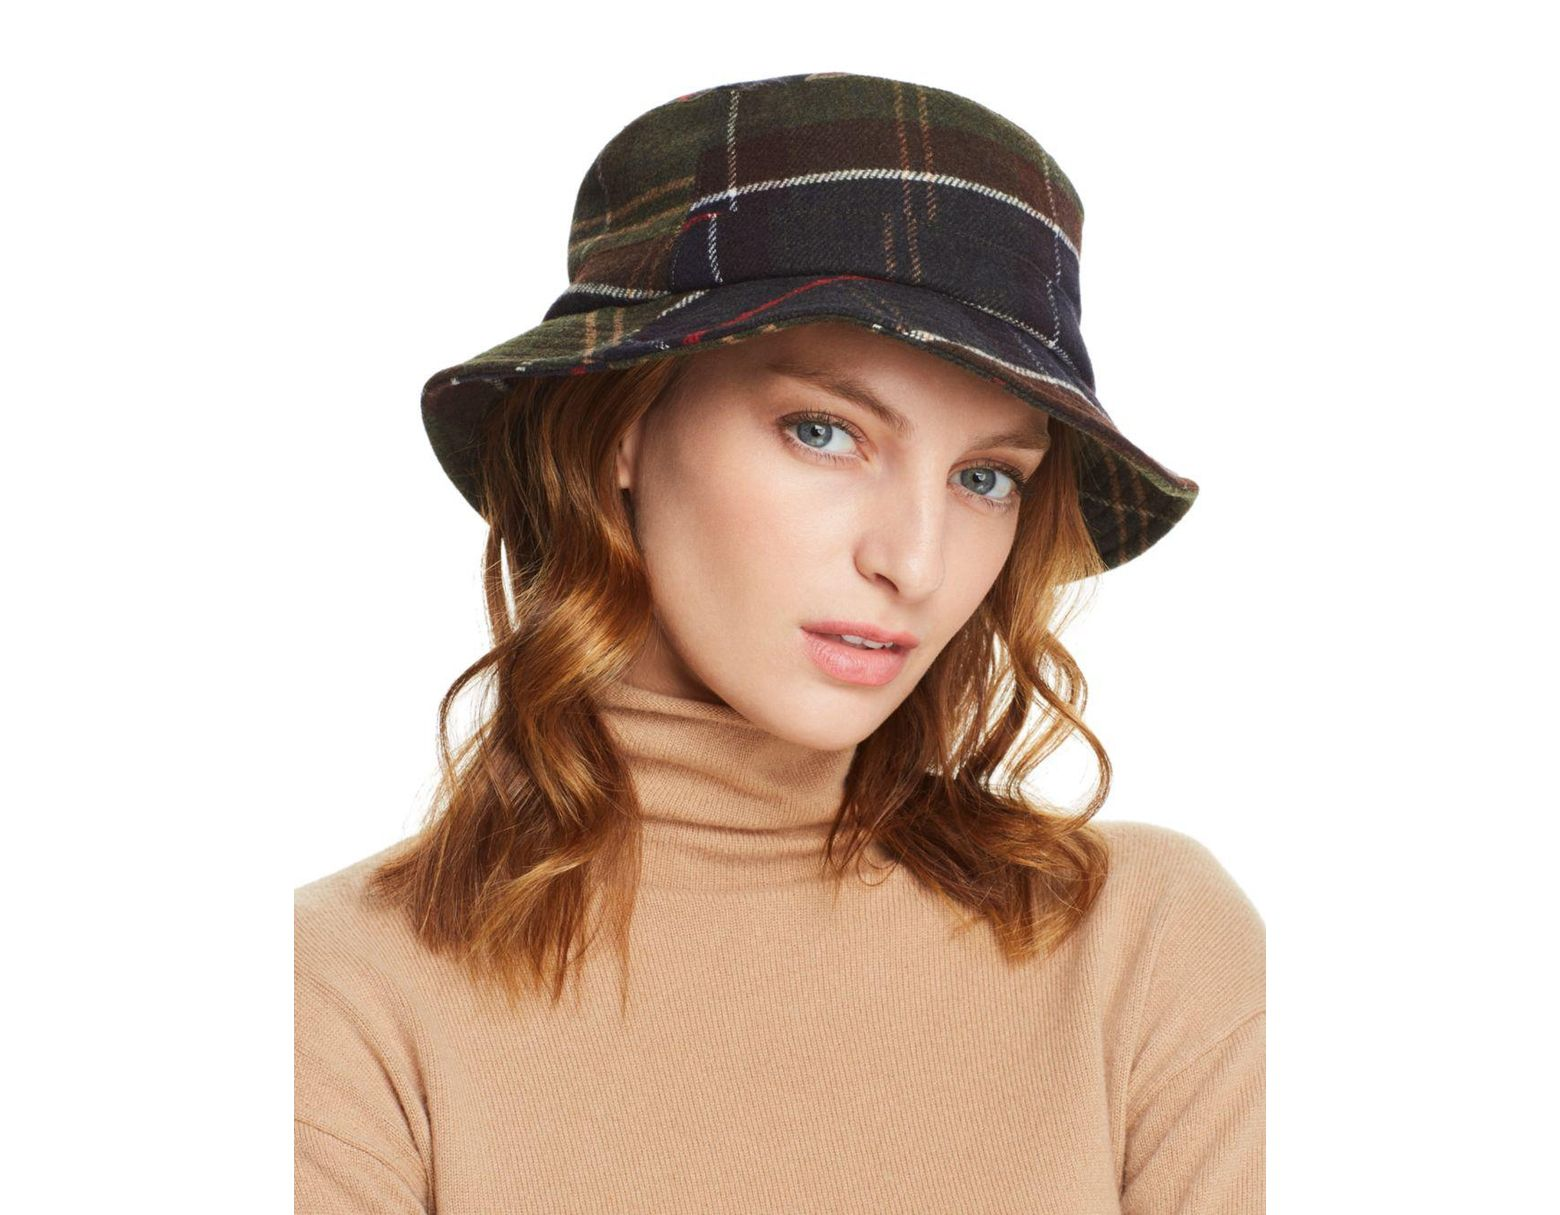 a69231b5e67f3 Barbour Galloway Plaid Bucket Hat in Brown - Lyst